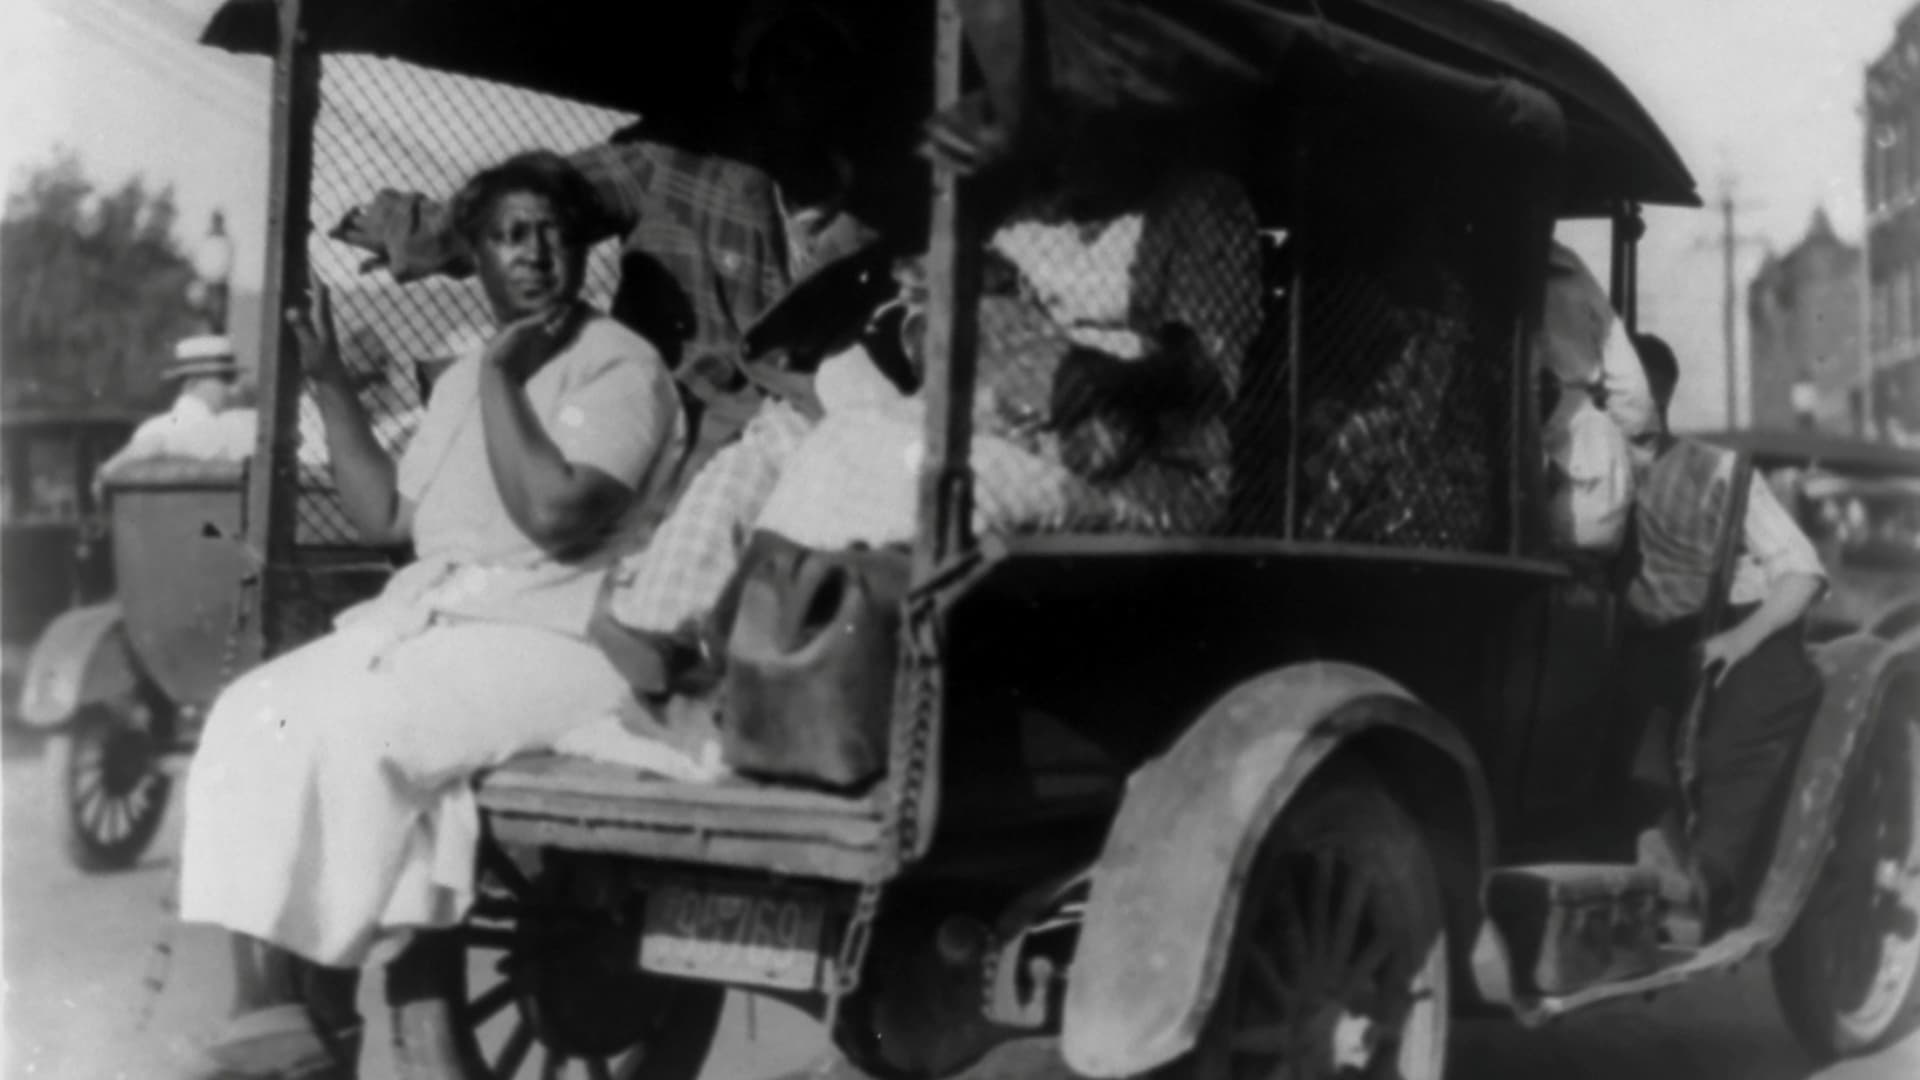 A truck carries African Americans during race massacre in Tulsa, Oklahoma, U.S. in 1921.